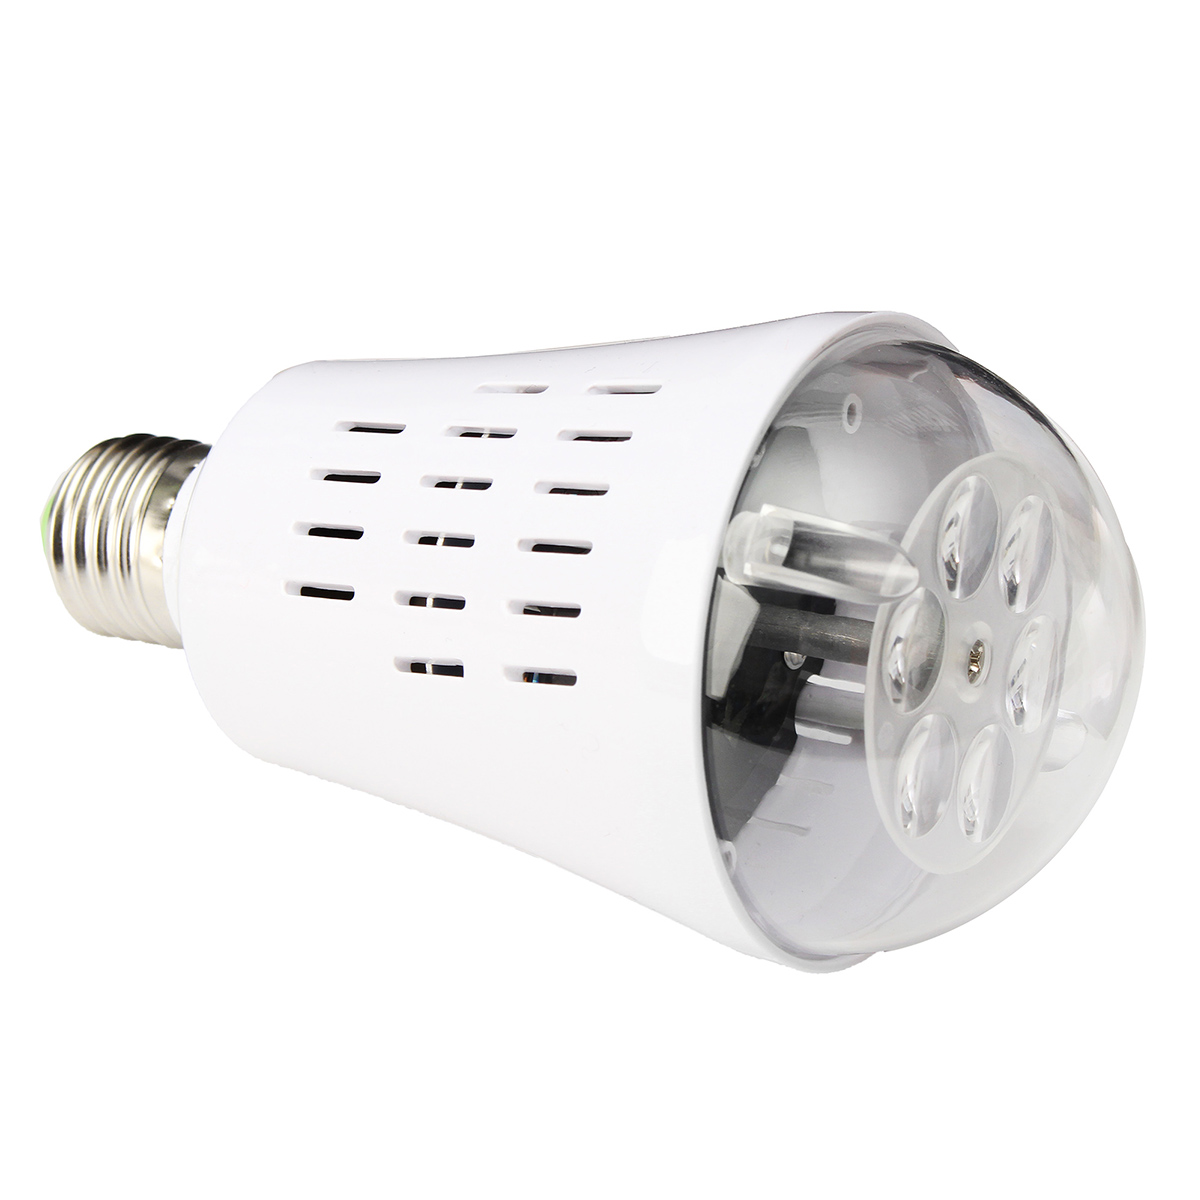 E27 4W Fireworks LED Rotating Projector Stage Lighting Spot Lamp Bulb Down Light